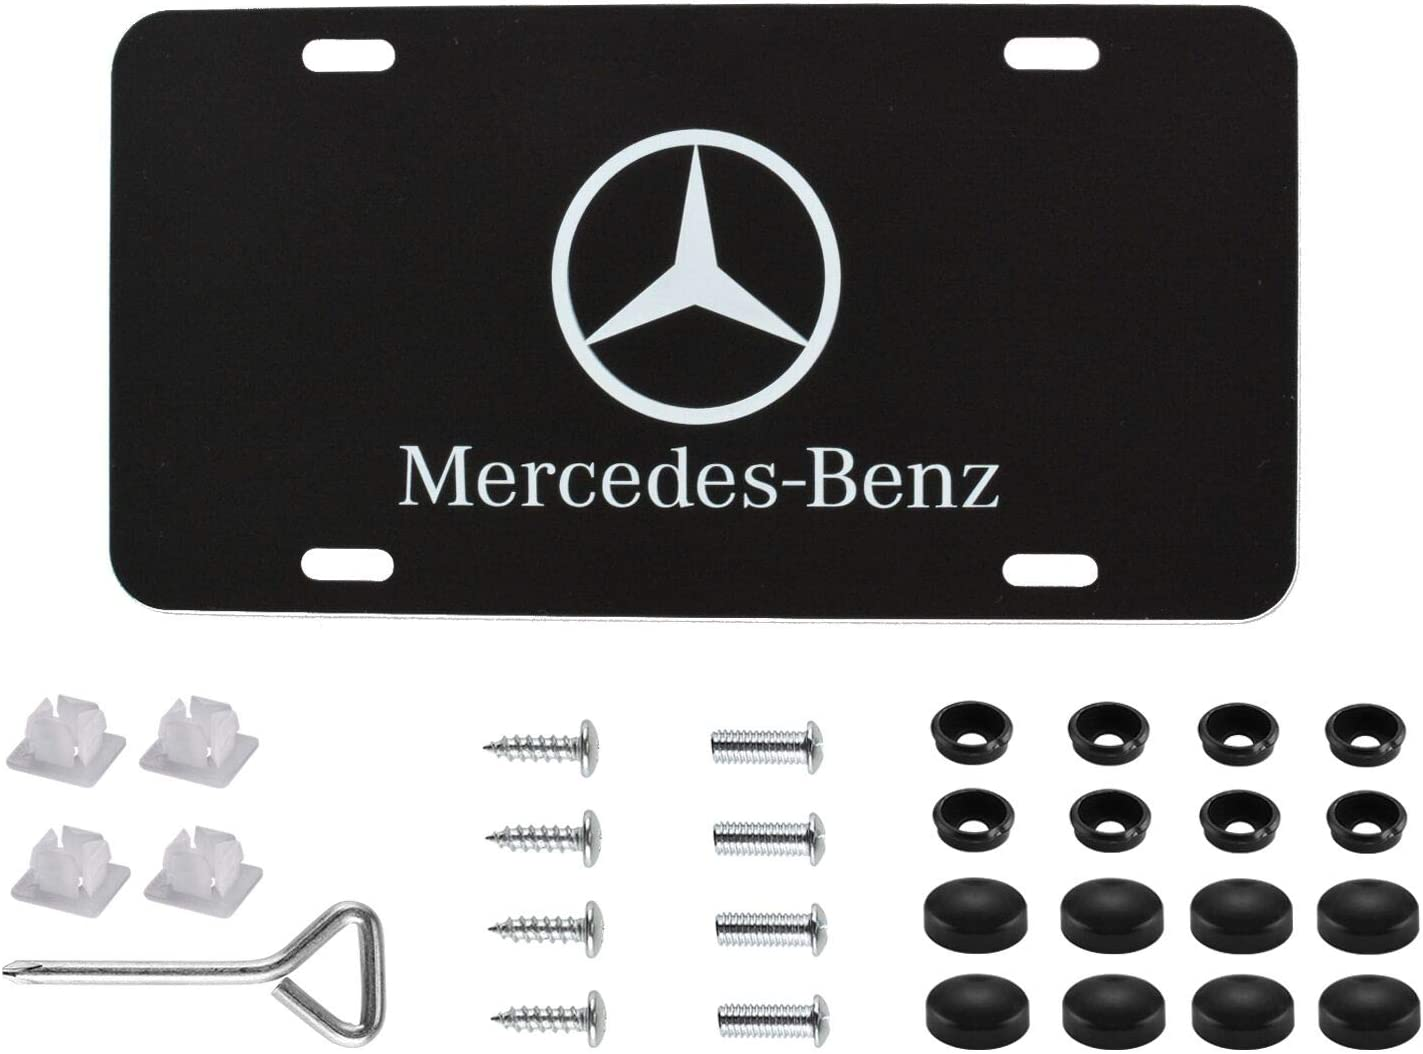 Infiniti Logo Stainless Steel 3-D License Plate,with Screw Caps Cover Set Suit,Applicable to US Standard car License Frame for Infiniti. Infiniti